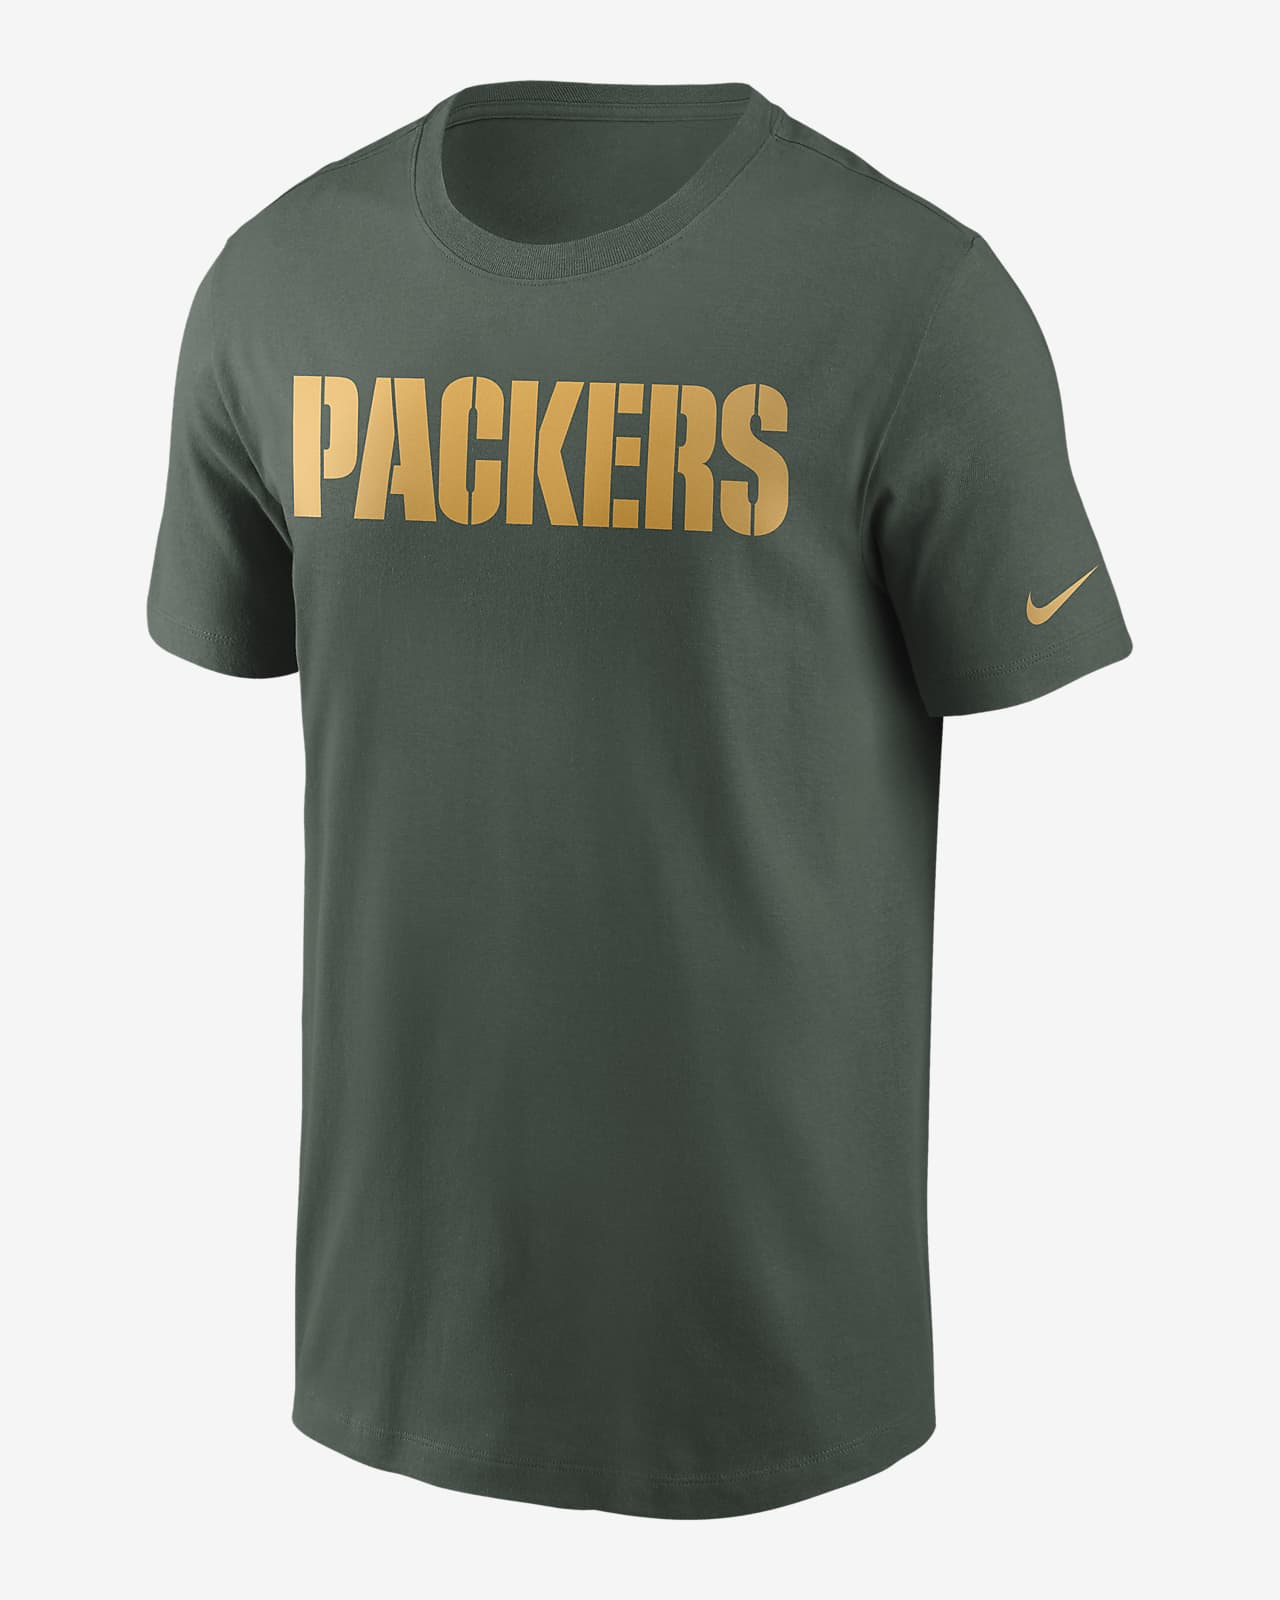 Nike Mens T-Shirts Dri-Fit NFL Green Bay Packers Short Sleeve Crew Neck T-Shirt